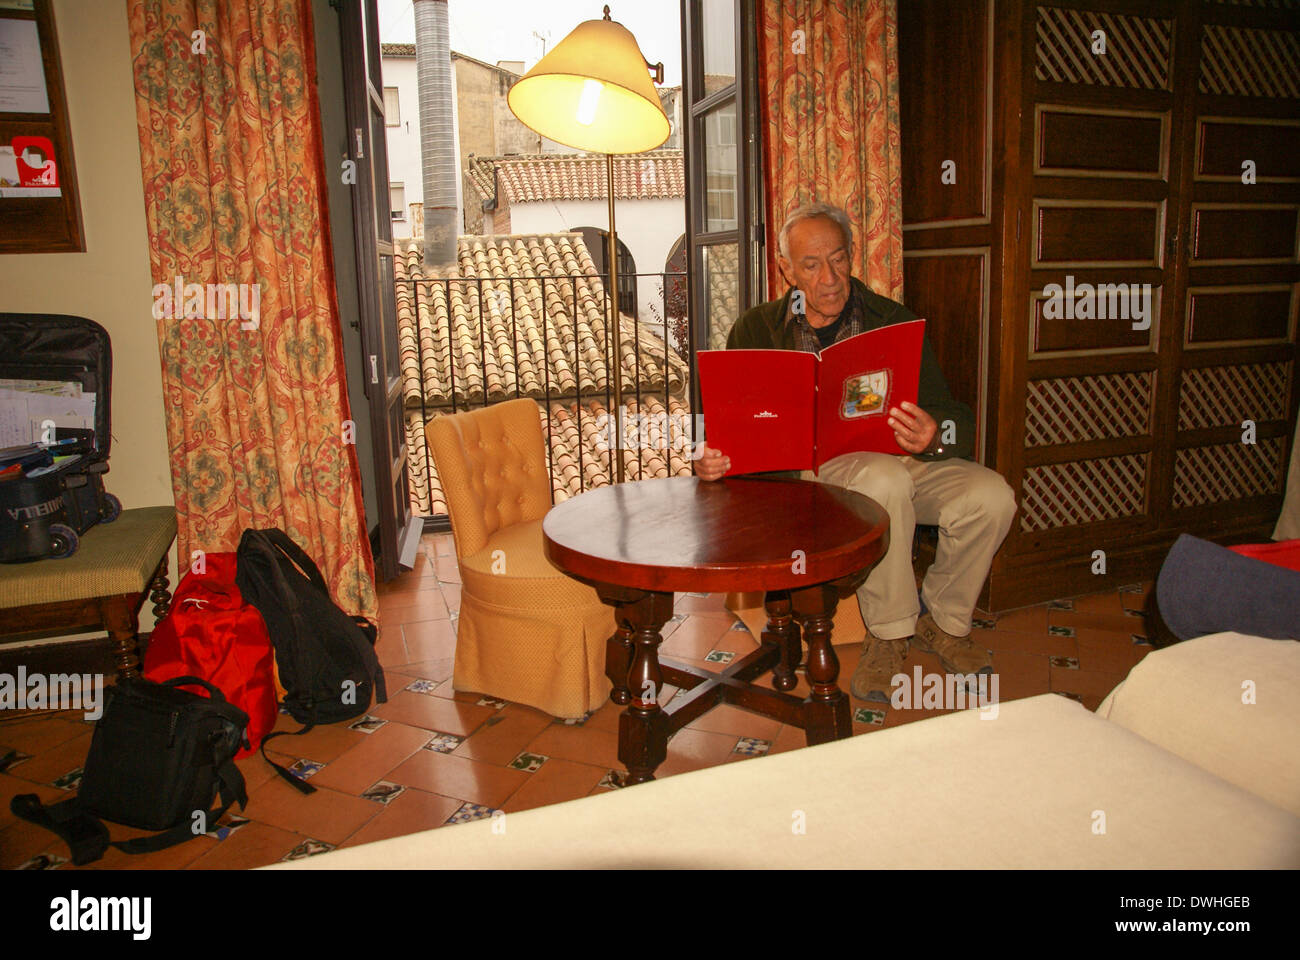 Mature man in his hotel room after a day of siteseeing. Photographed in Ubeda, Spain. Model release available - Stock Image